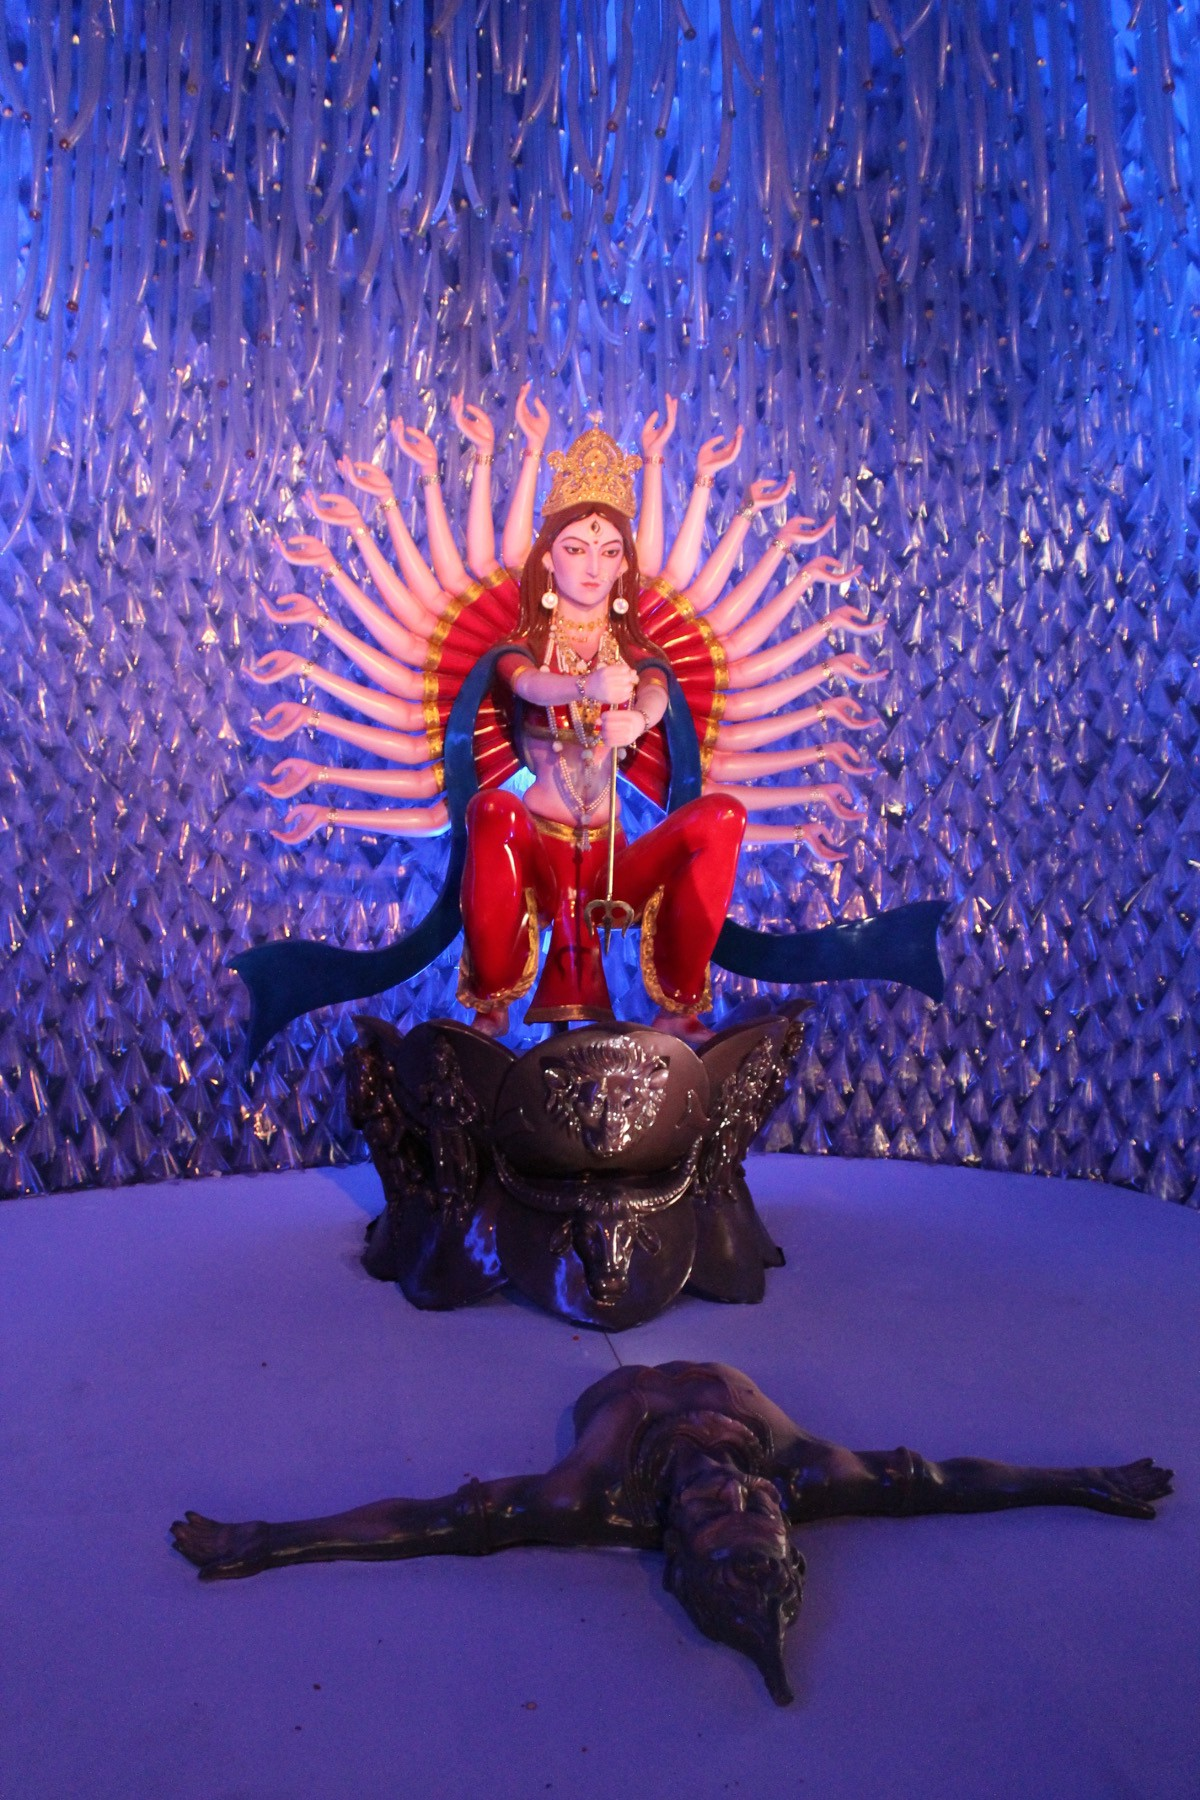 Durga Puja Diaries - Malay Haldar - Medium